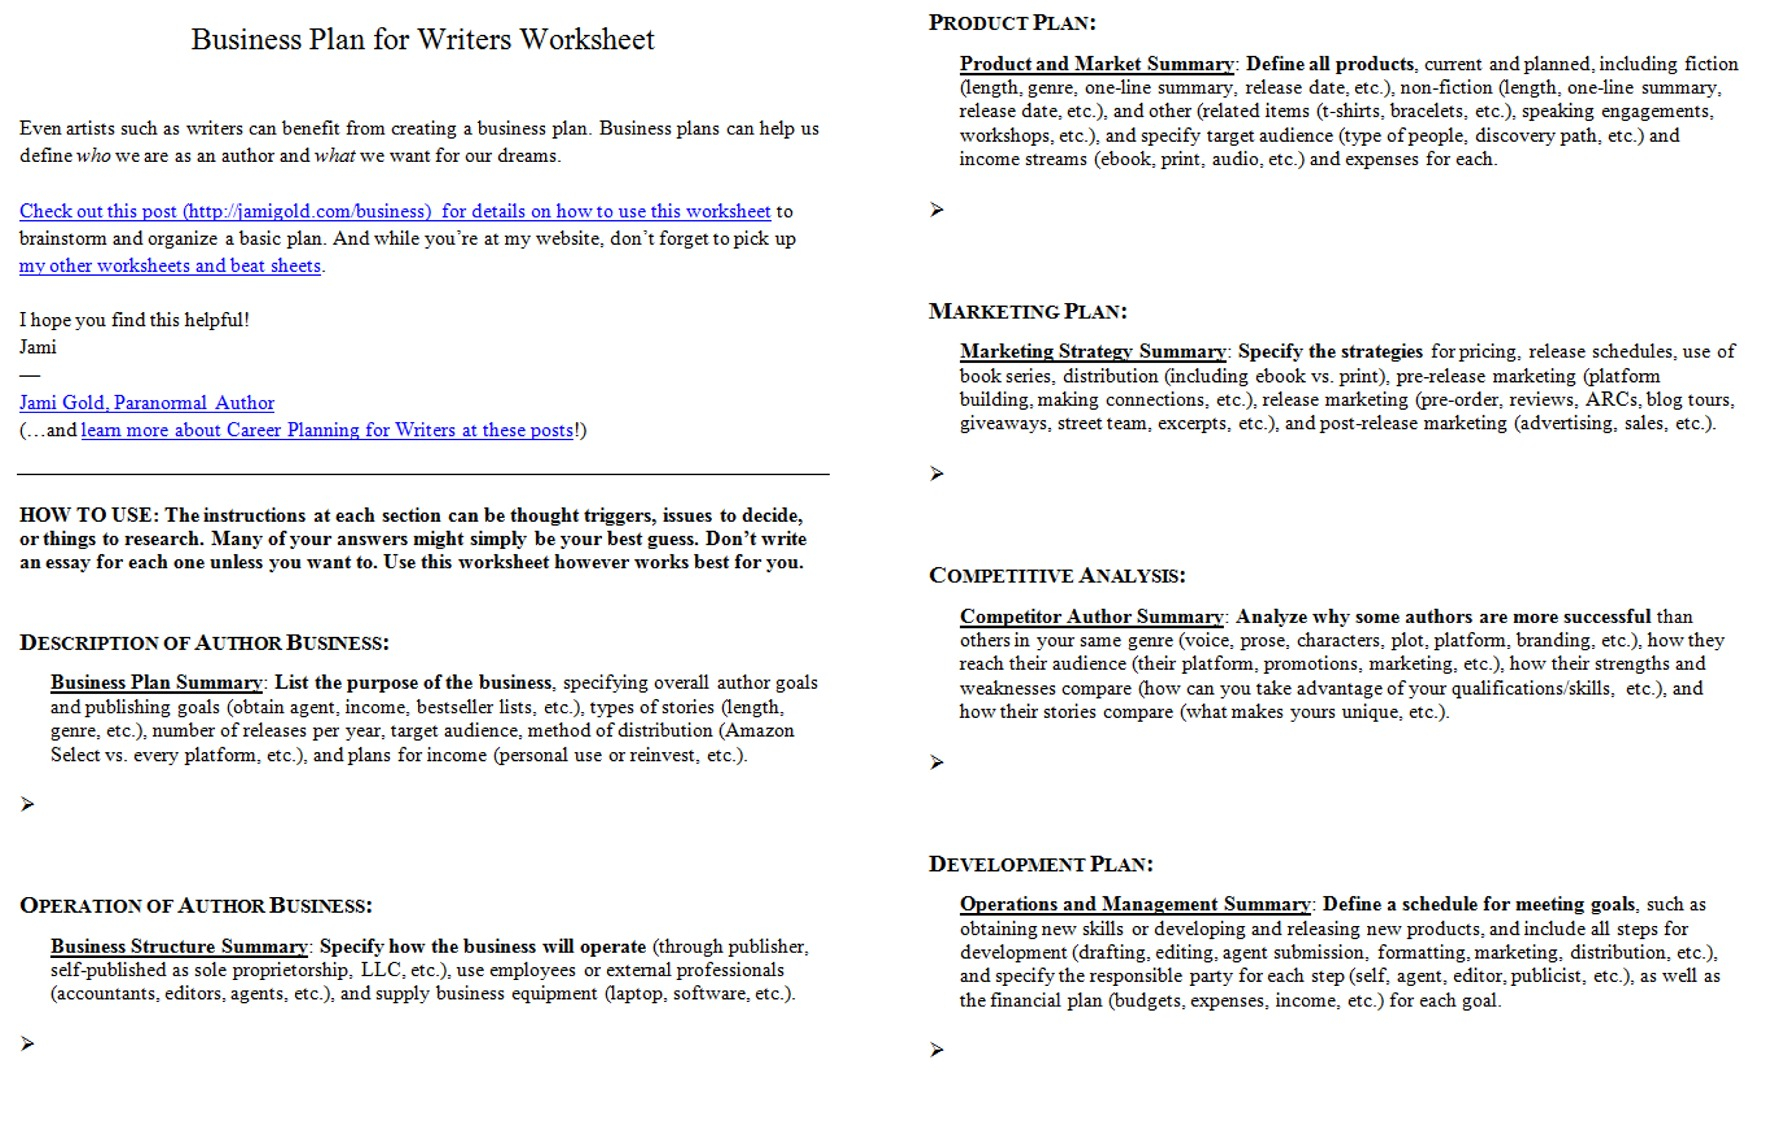 Weirdmailus  Unique Worksheets For Writers  Jami Gold Paranormal Author With Fair Screen Shot Of Both Pages Of The Business Plan For Writers Worksheet With Delightful Th Grade Exponents Worksheets Also Camera Angles Worksheet In Addition Free Printable Grade  Worksheets And Rd Grade Antonyms Worksheet As Well As Math Worksheets Year  Additionally Key Stage  Literacy Worksheets From Jamigoldcom With Weirdmailus  Fair Worksheets For Writers  Jami Gold Paranormal Author With Delightful Screen Shot Of Both Pages Of The Business Plan For Writers Worksheet And Unique Th Grade Exponents Worksheets Also Camera Angles Worksheet In Addition Free Printable Grade  Worksheets From Jamigoldcom